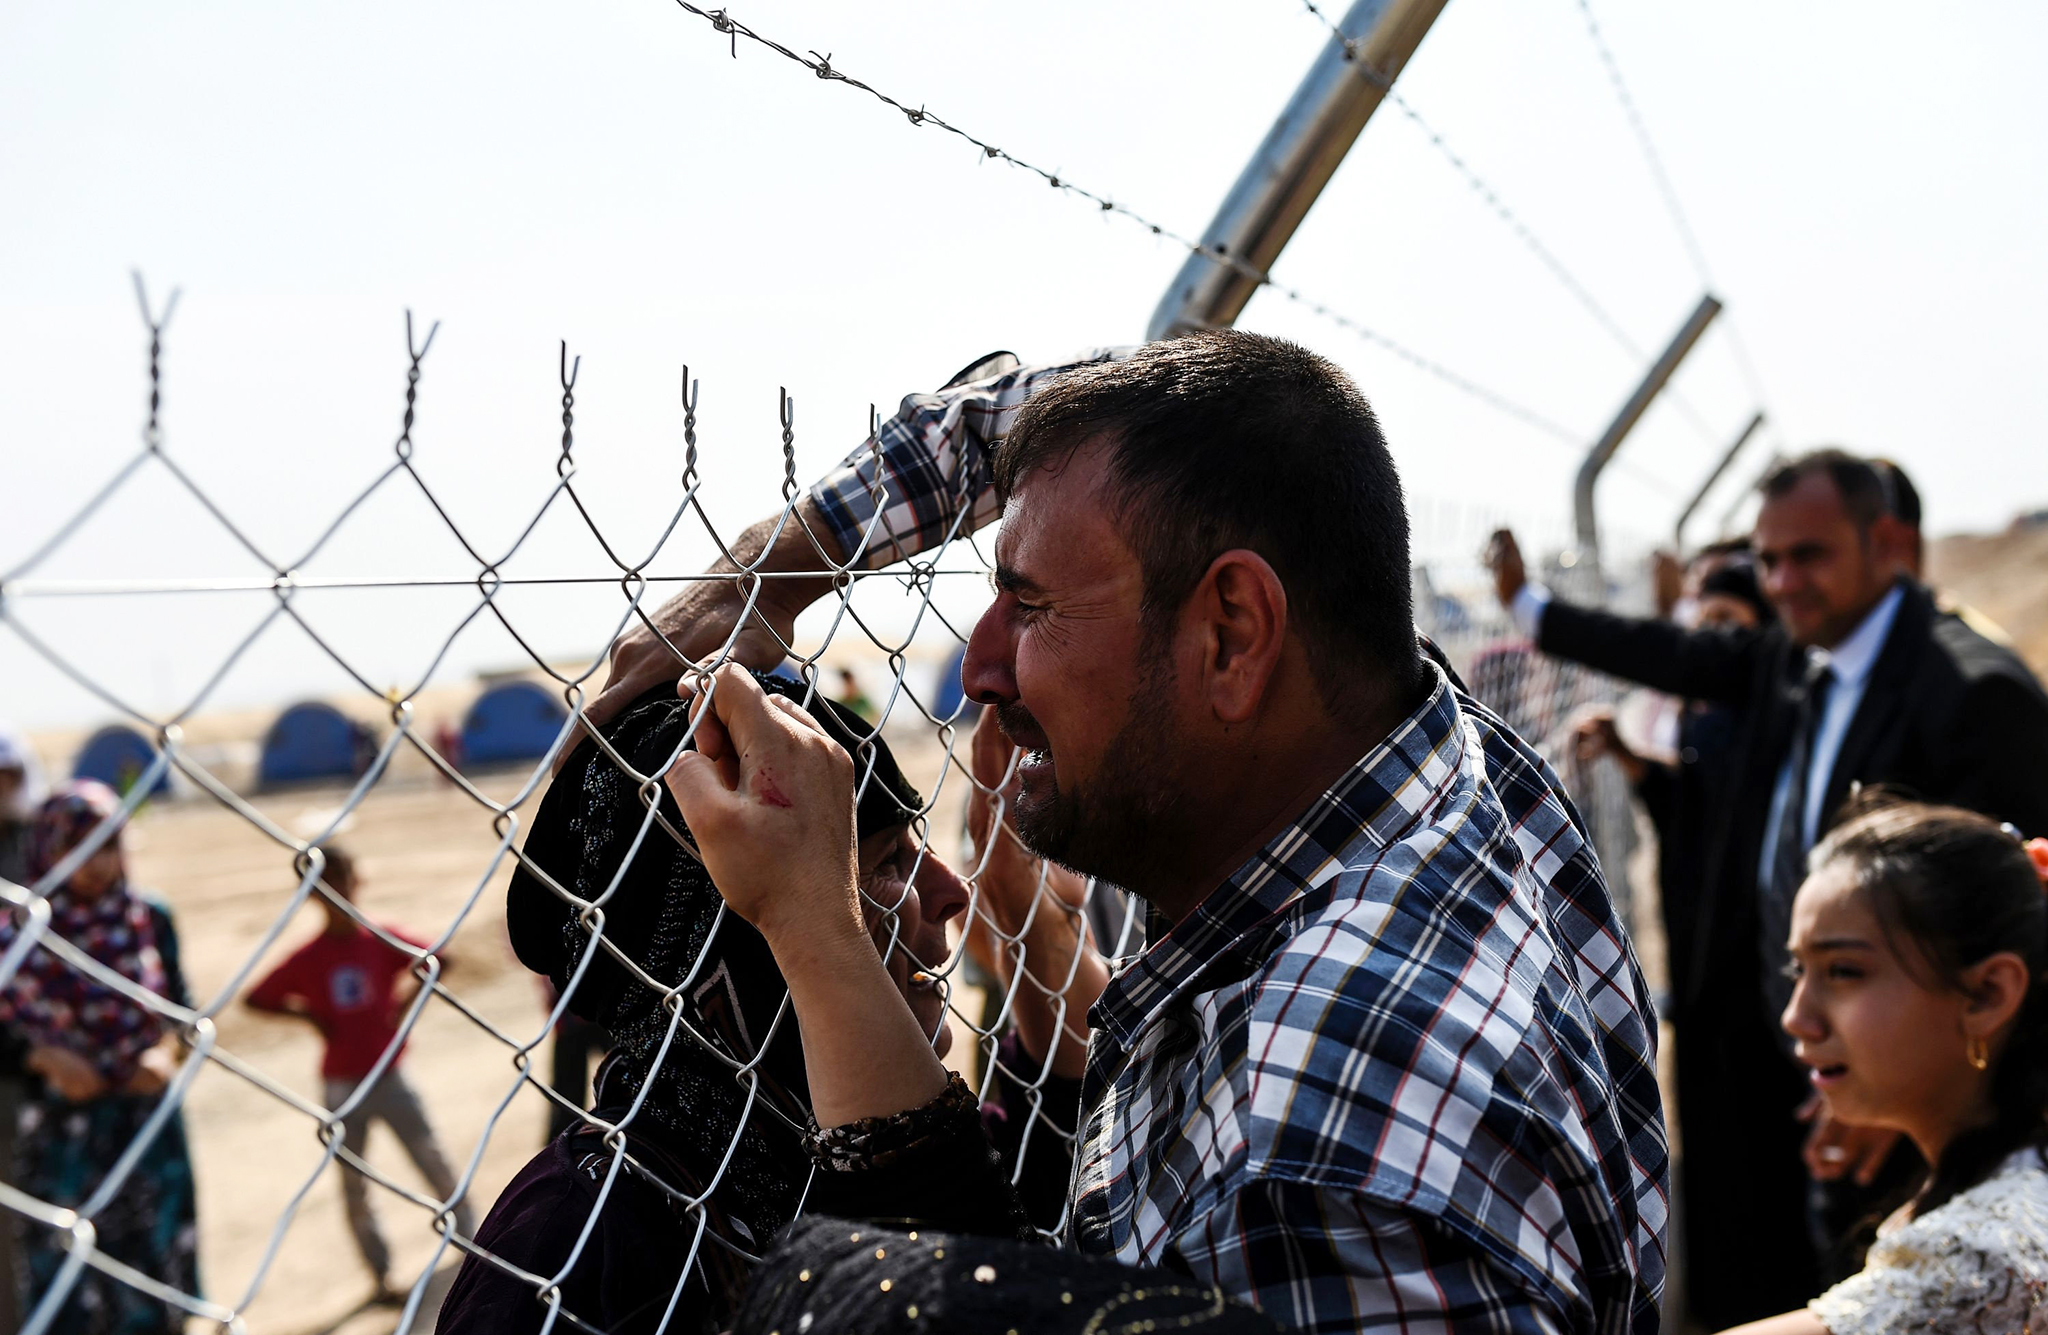 Newly displaced Iraq's who fled from the city of Mosul, Iraq's last major Islamic State (IS) group stronghold, cry as they meet their relatives who came two years ago to the refugee camp in the Khazer area, near near the Kurdish checkpoint of Aksi Kalak, some 40 kilometres east of Arbil following their arrival on October 26, 2016.  The United Nations Office for the Coordination of Humanitarian Affairs (OCHA) Stephane Dujarric told reporters that almost 9,000 people are internally displaced as a result of the Mosul military operation in Iraq. Lise Grande, the U.N. humanitarian coordinator for Iraq, said the military operations to retake Mosul could spark the largest humanitarian crisis in 2016 as the security situation in the area restrains aid agencies' ability to deliver help. / AFP PHOTO / BULENT KILICBULENT KILIC/AFP/Getty Images